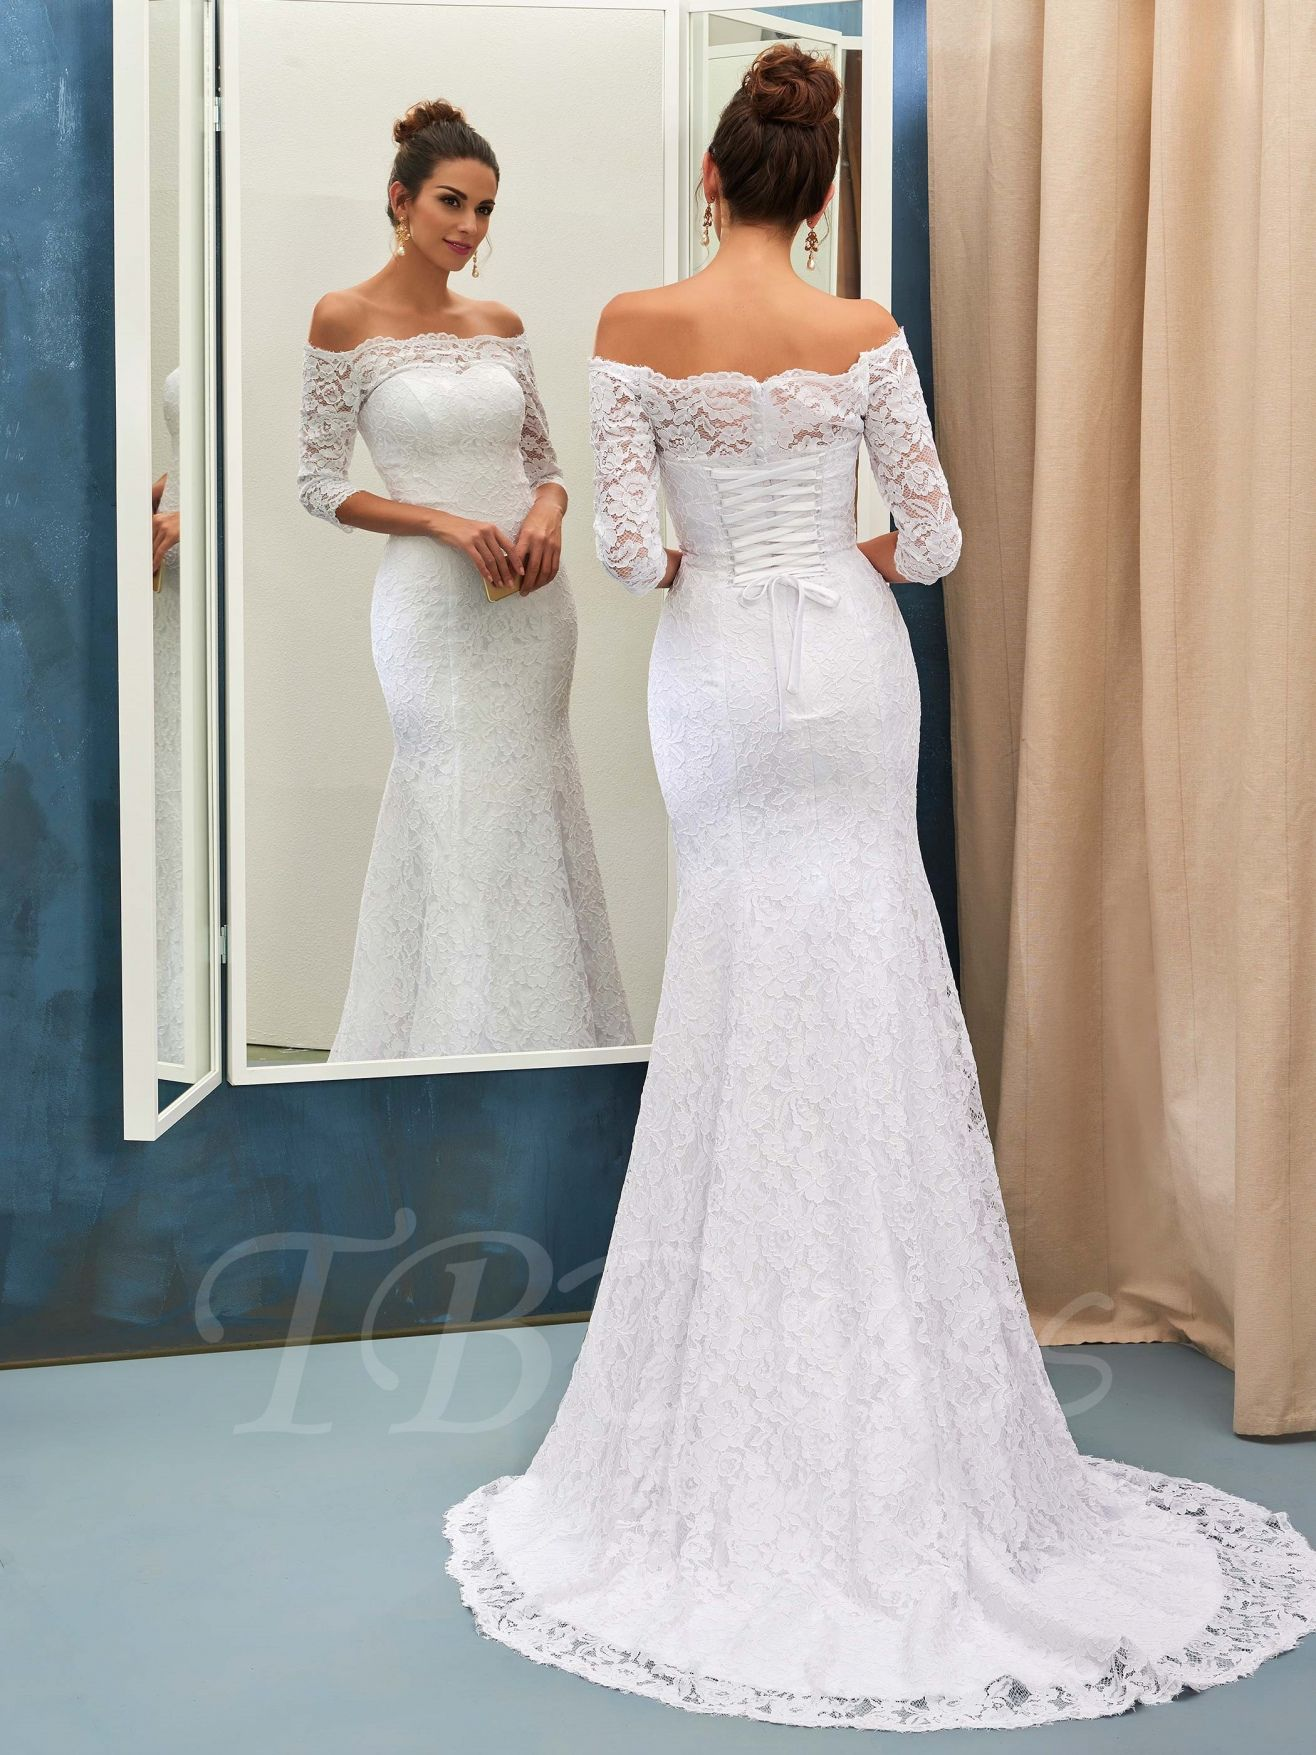 2019 where to Find Cheap Wedding Dresses - Best Wedding Dress for ...